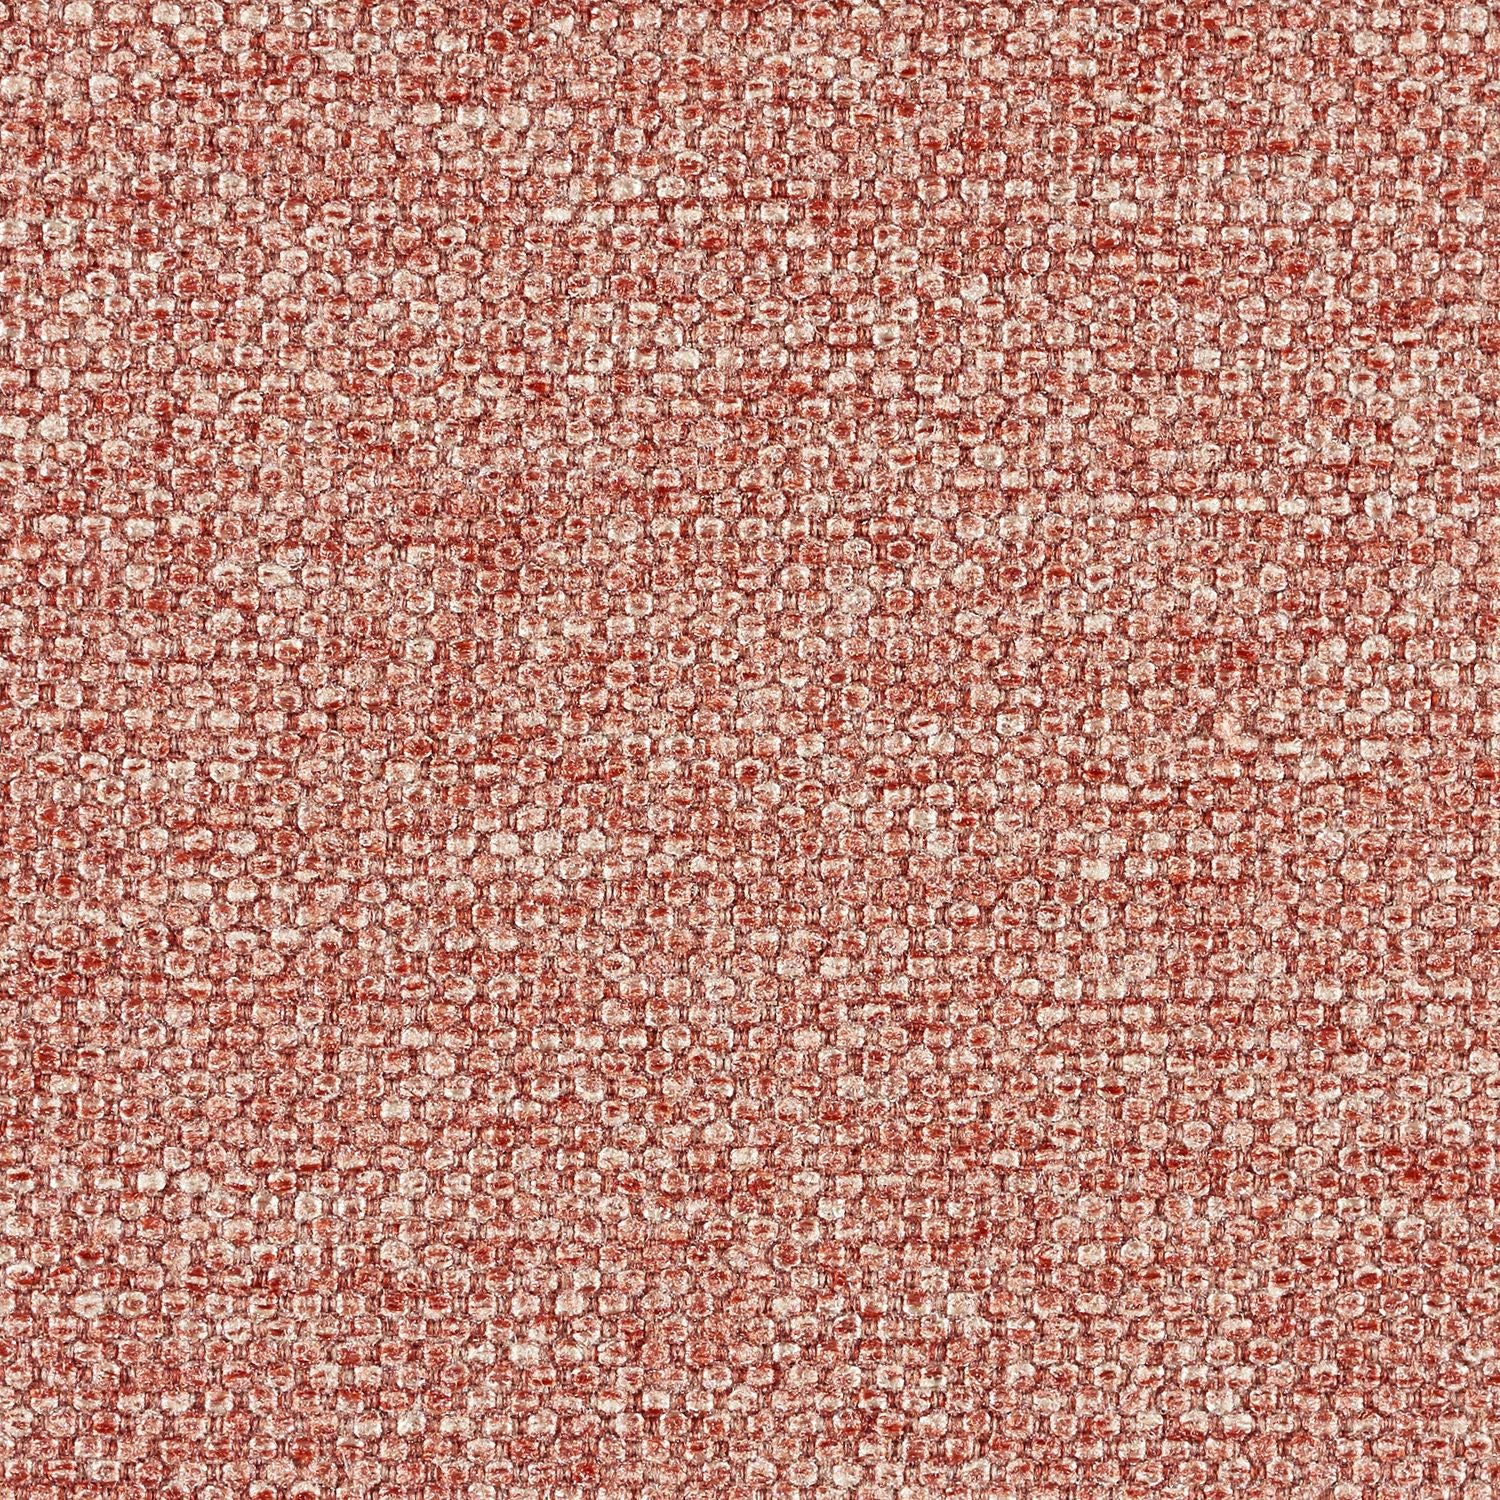 Rose Tweed|4058-13-D322|Rose Tweed 4058-13-D322